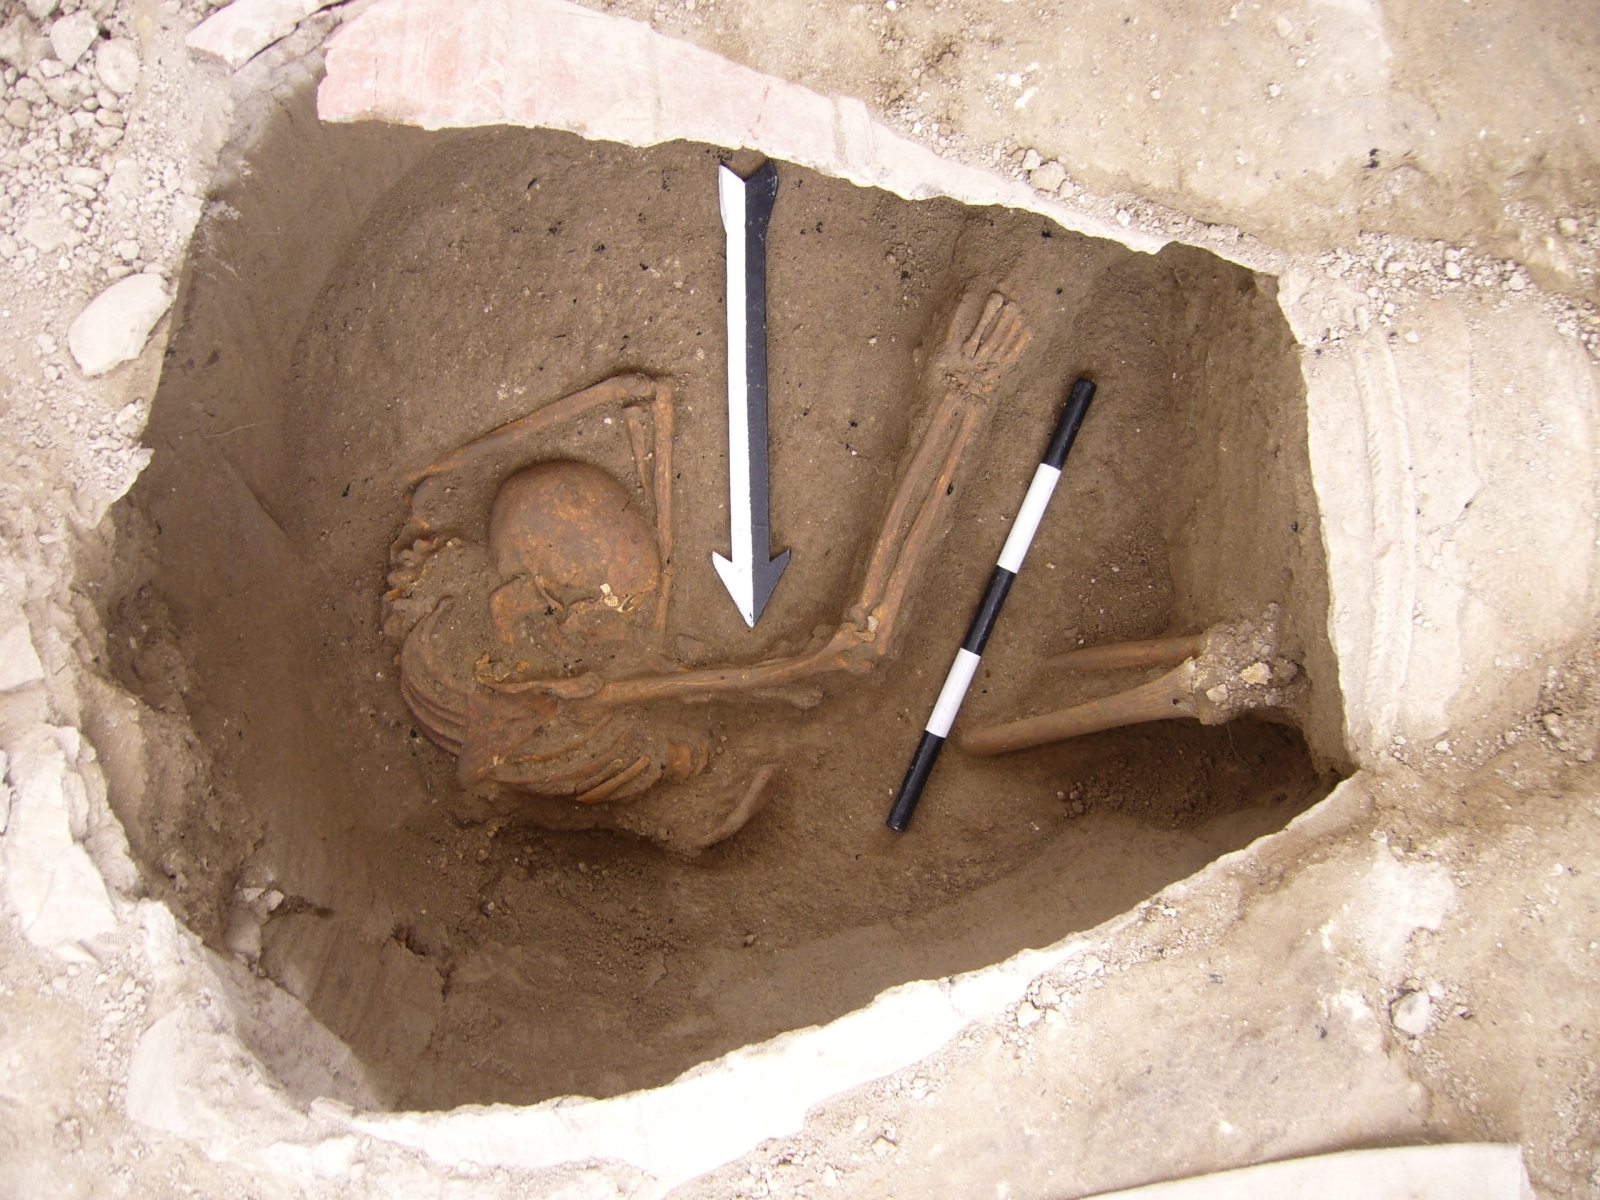 The mystery of ancient Canaanites is finally solved, genetic research shows